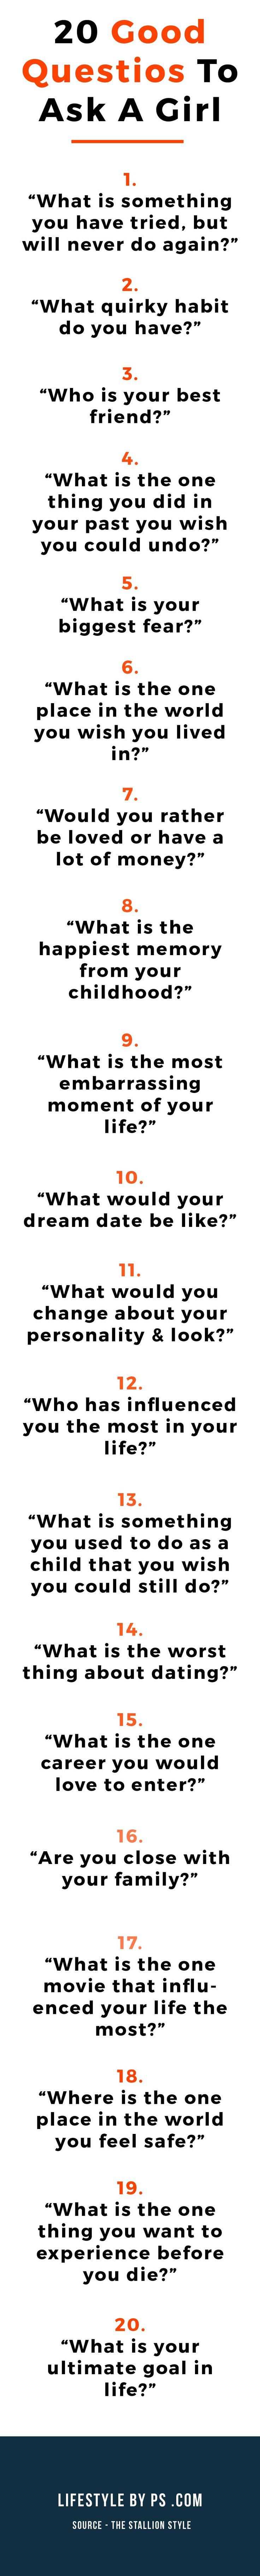 20 Good Questions To Ask A Girl